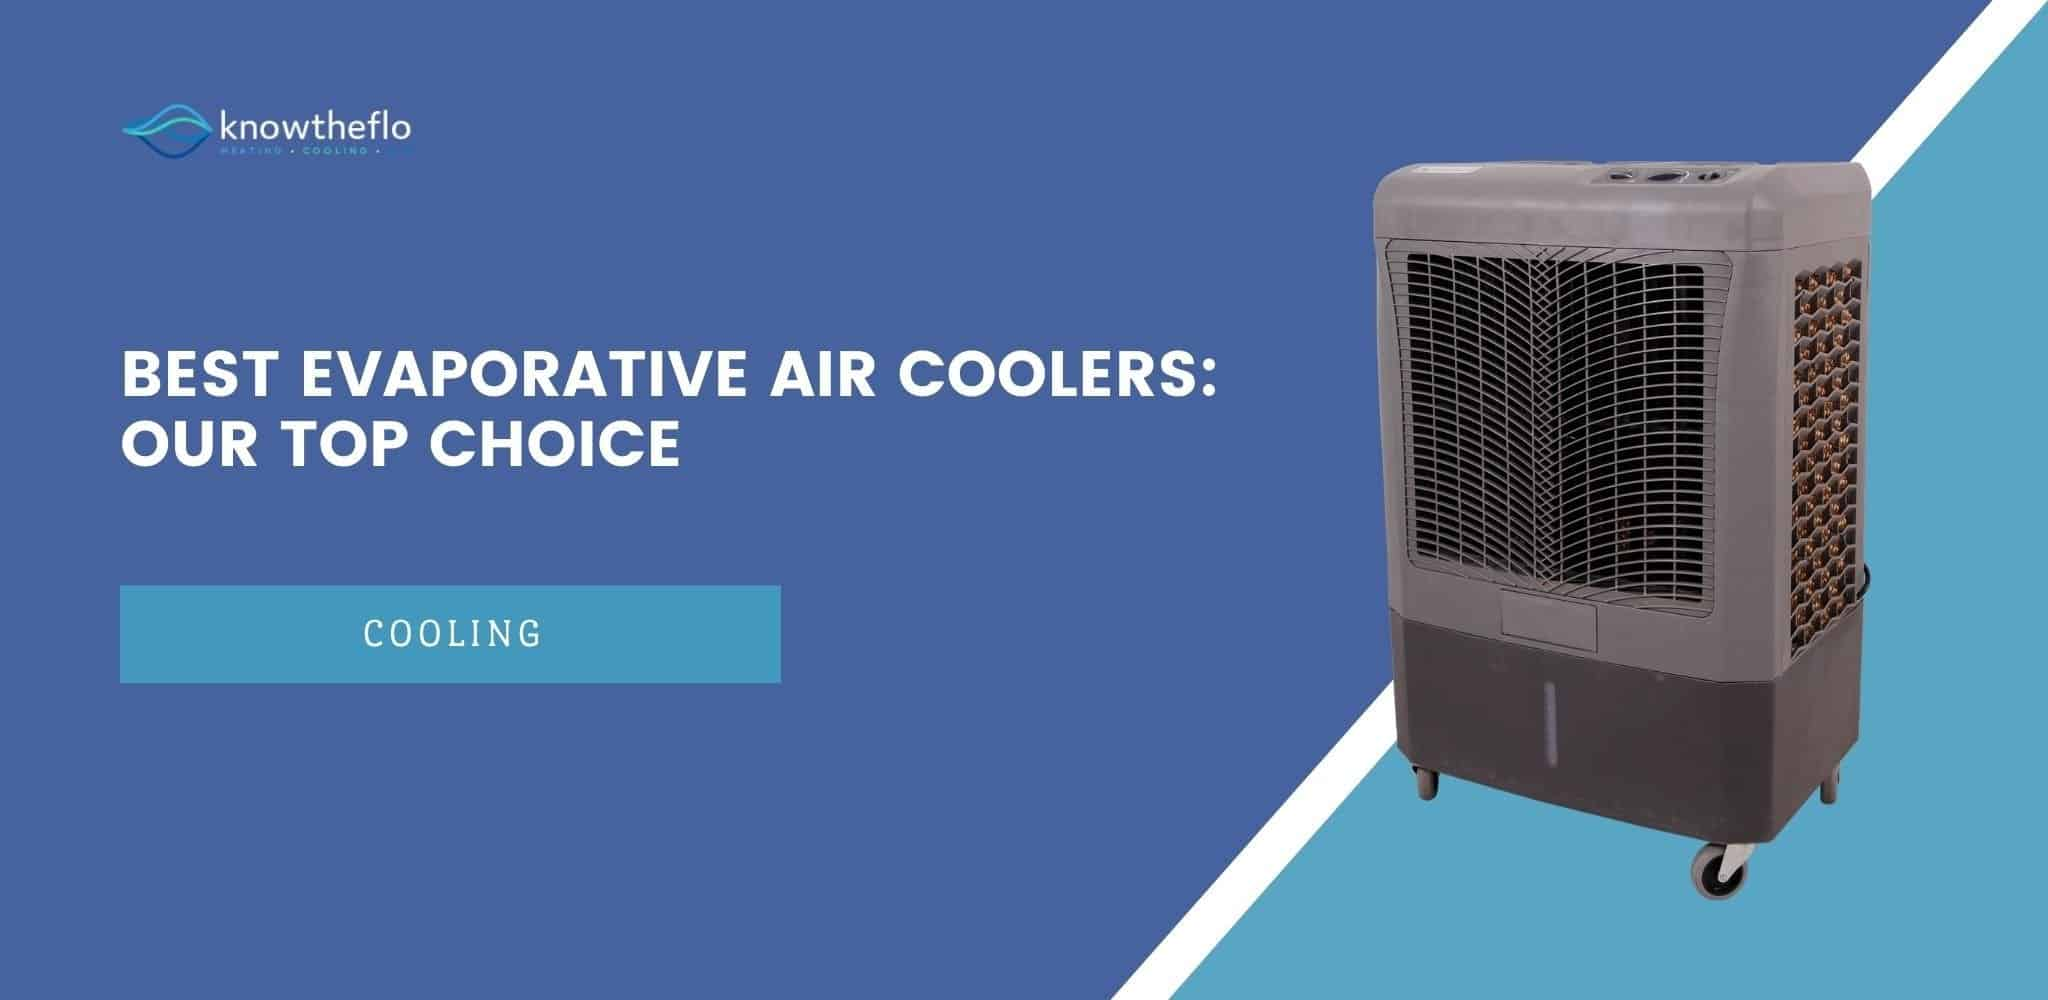 Best Evaporative Air Coolers 2020 - Our Top Choice